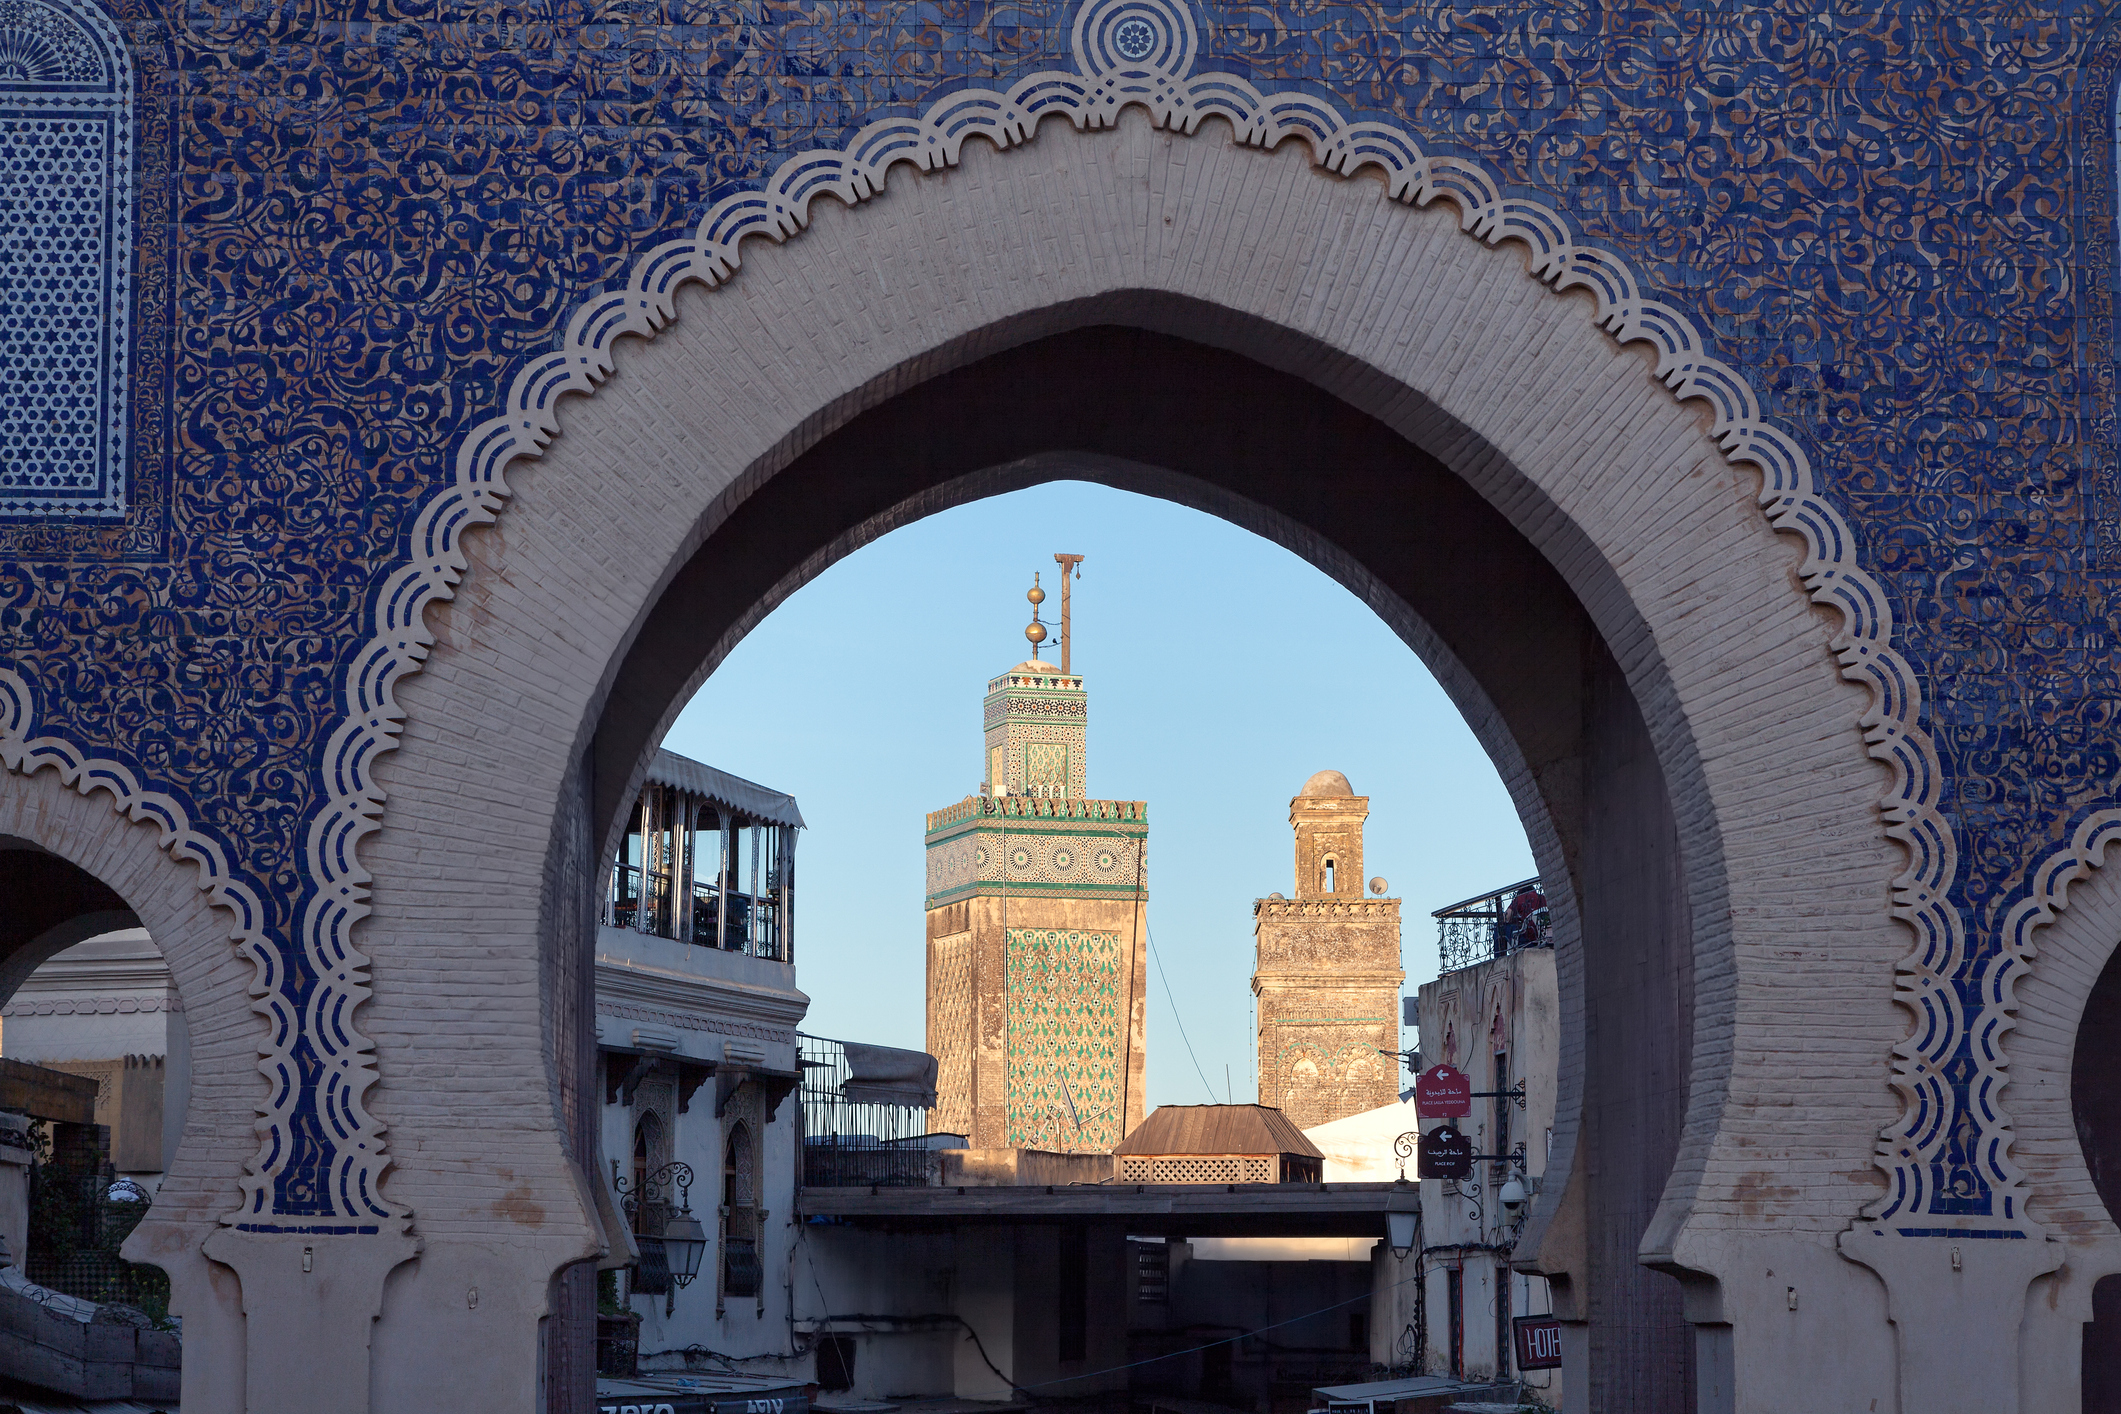 Fez, Morocco - March 7, 2015: Looking through Bab Boujaloud Gate into the ancient Fez El Bali Medina, Morocco.